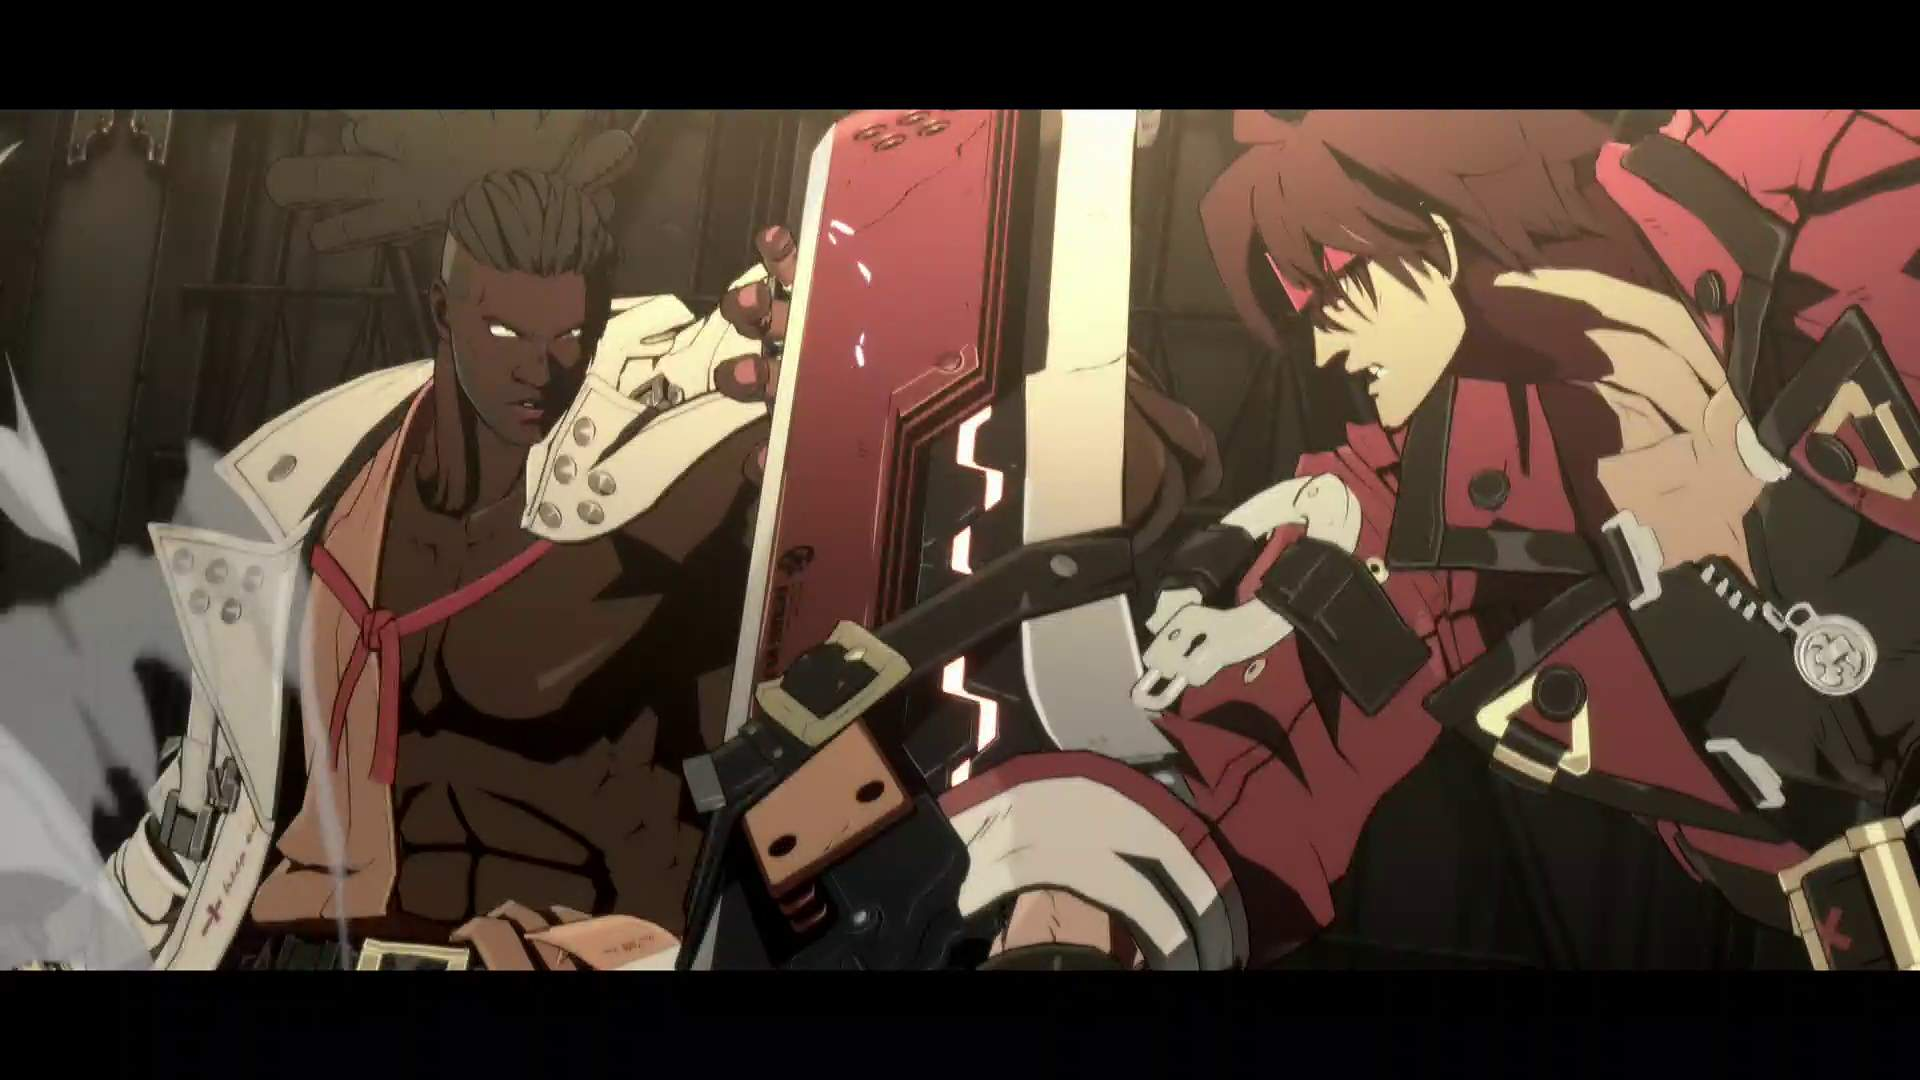 Guilty Gear -Strive- Story Mode trailer